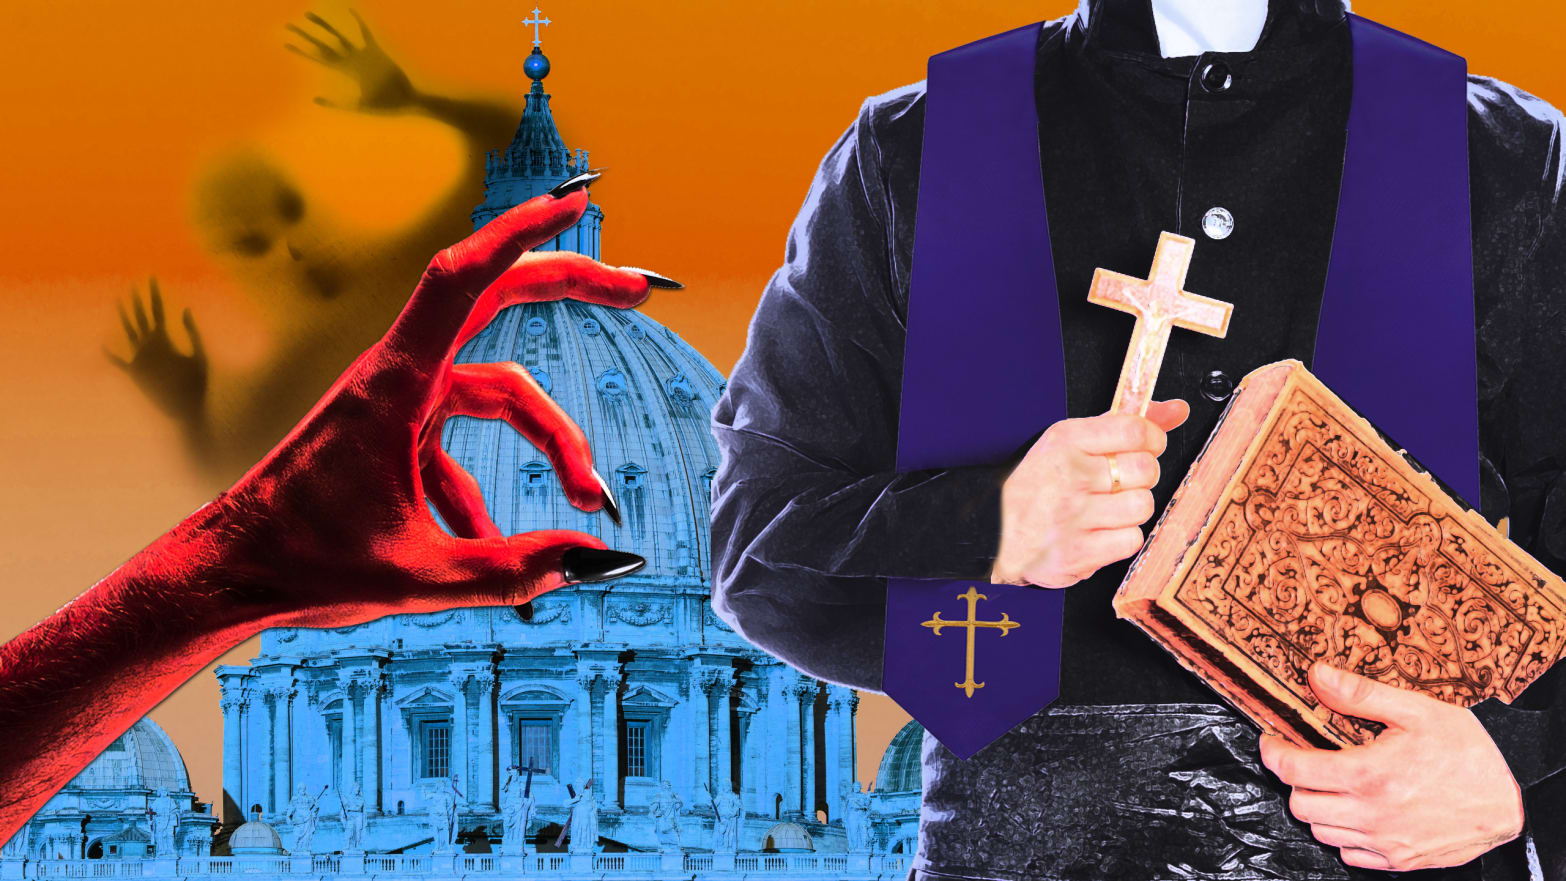 Speak of the Devil: The Vatican Hosts an Exorcist Convention